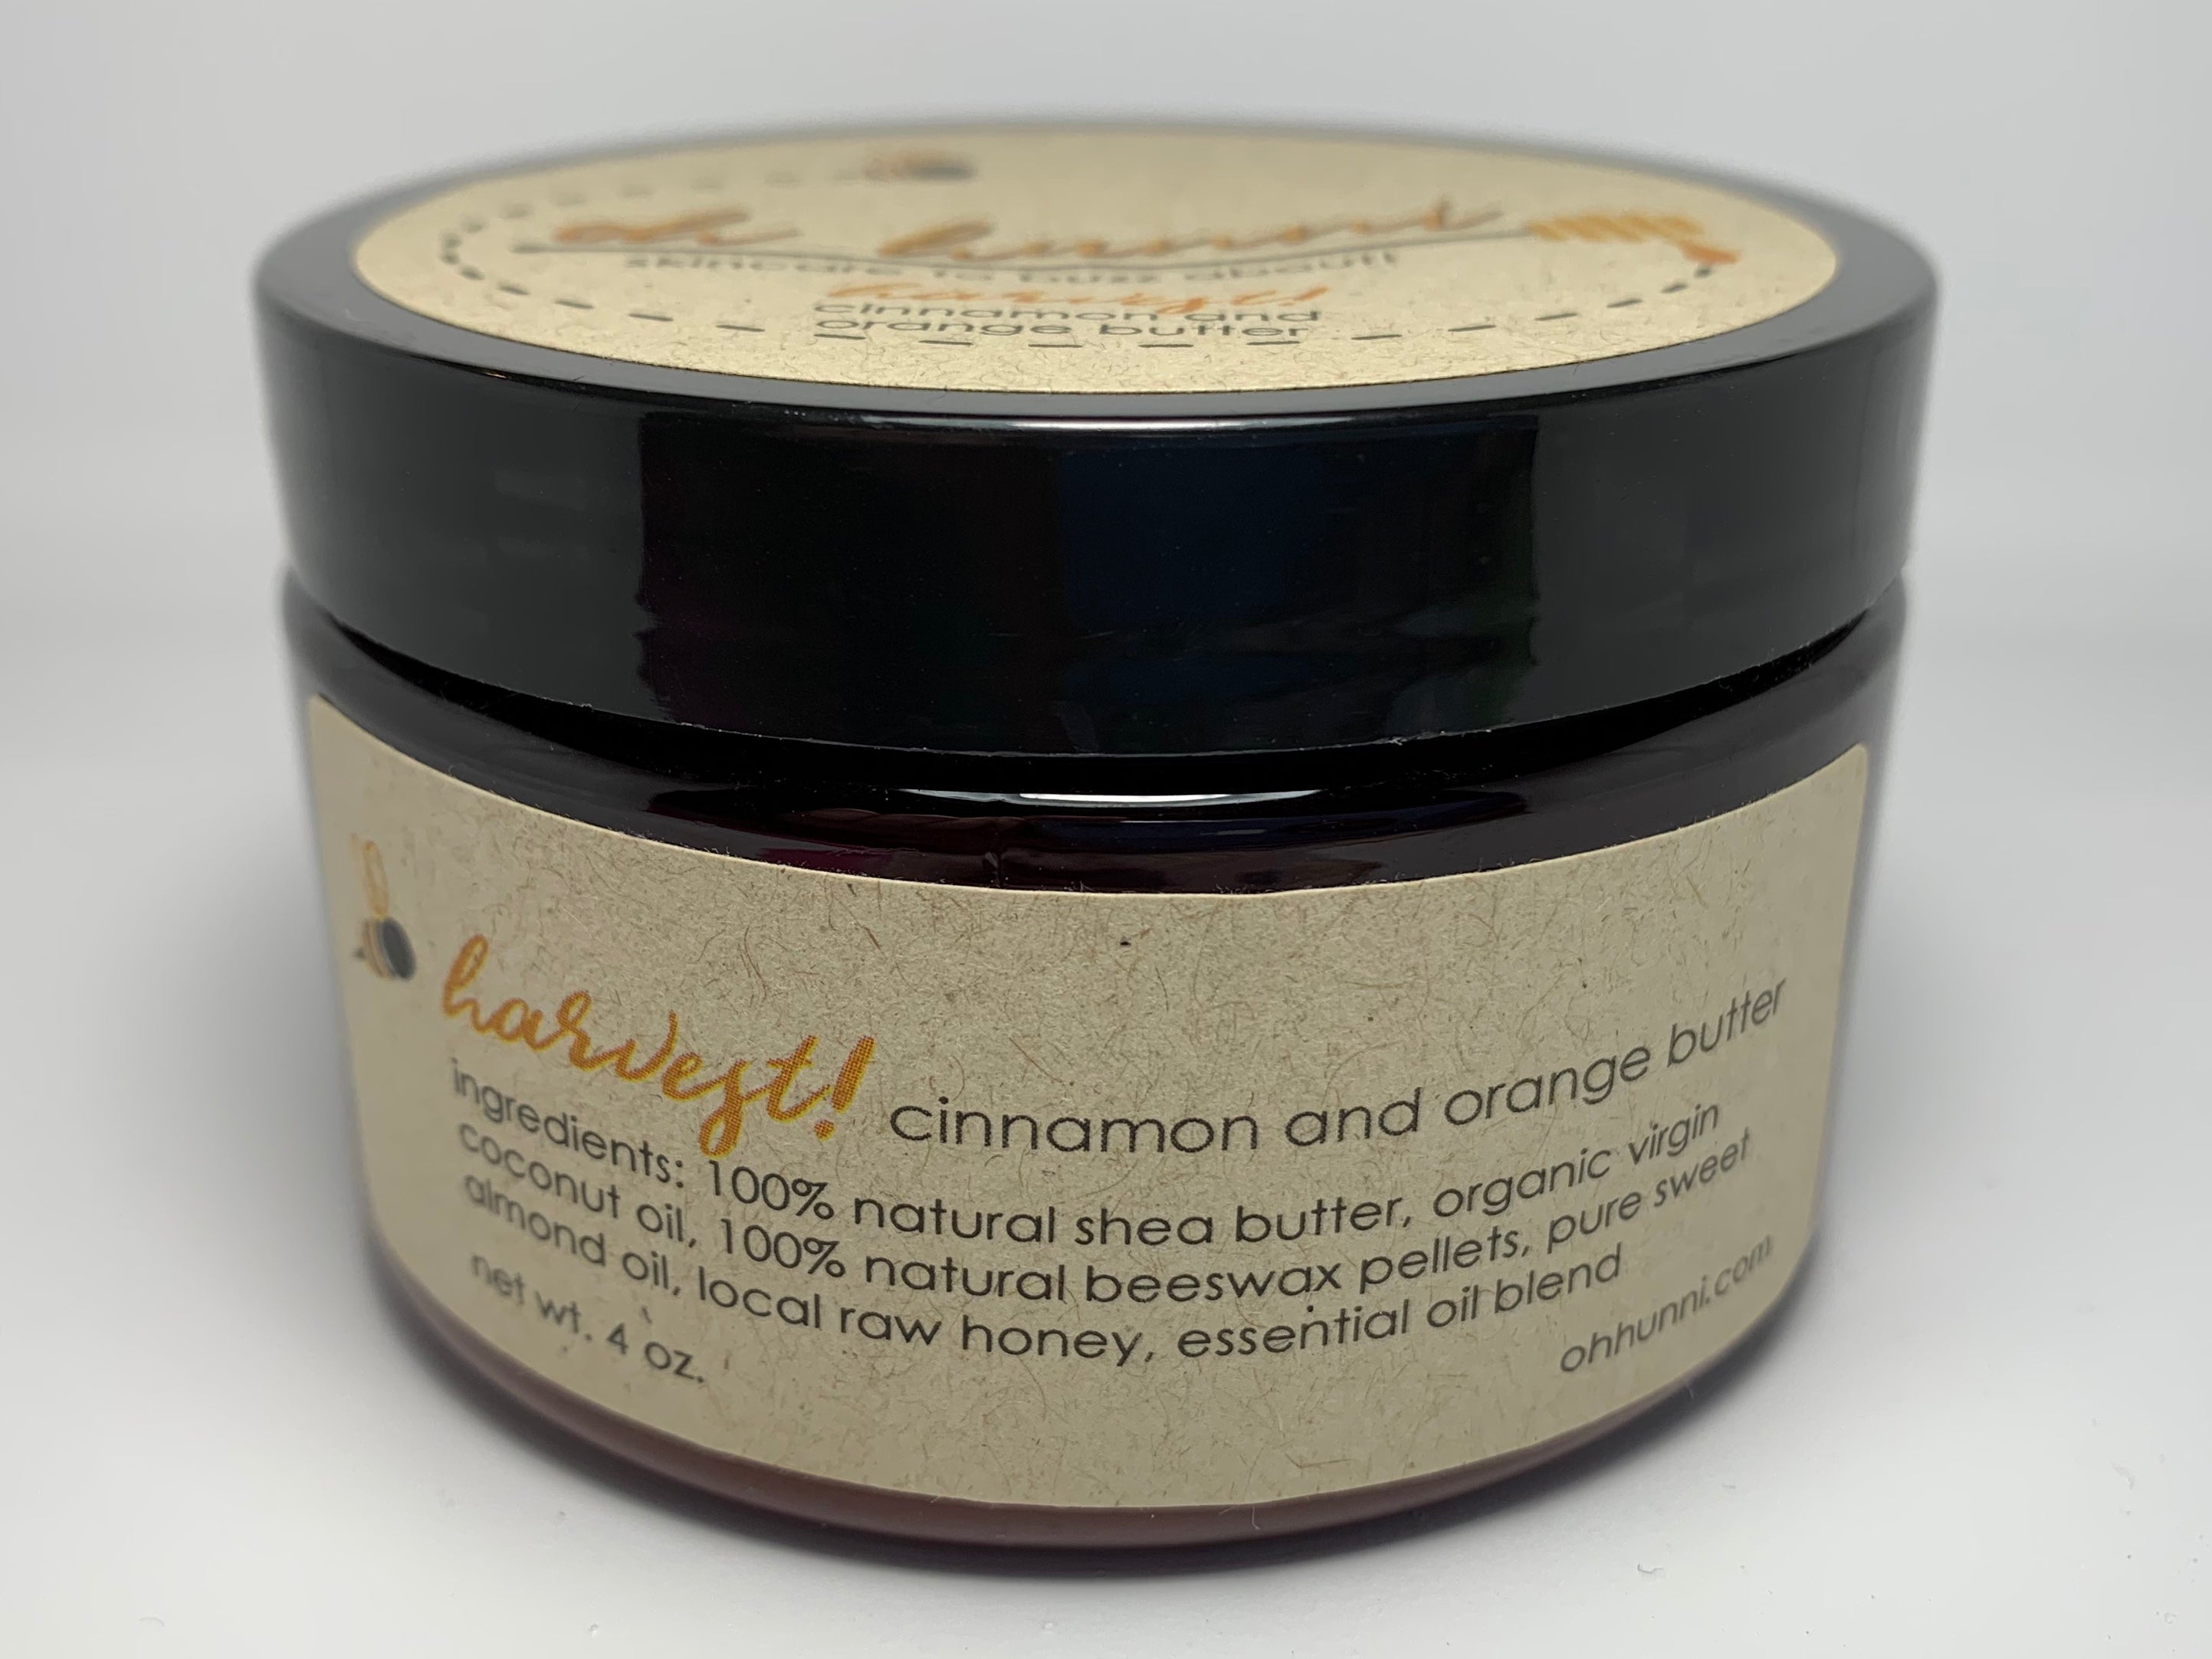 All Natural & Organic Body Butter made with Cinnamon & Orange